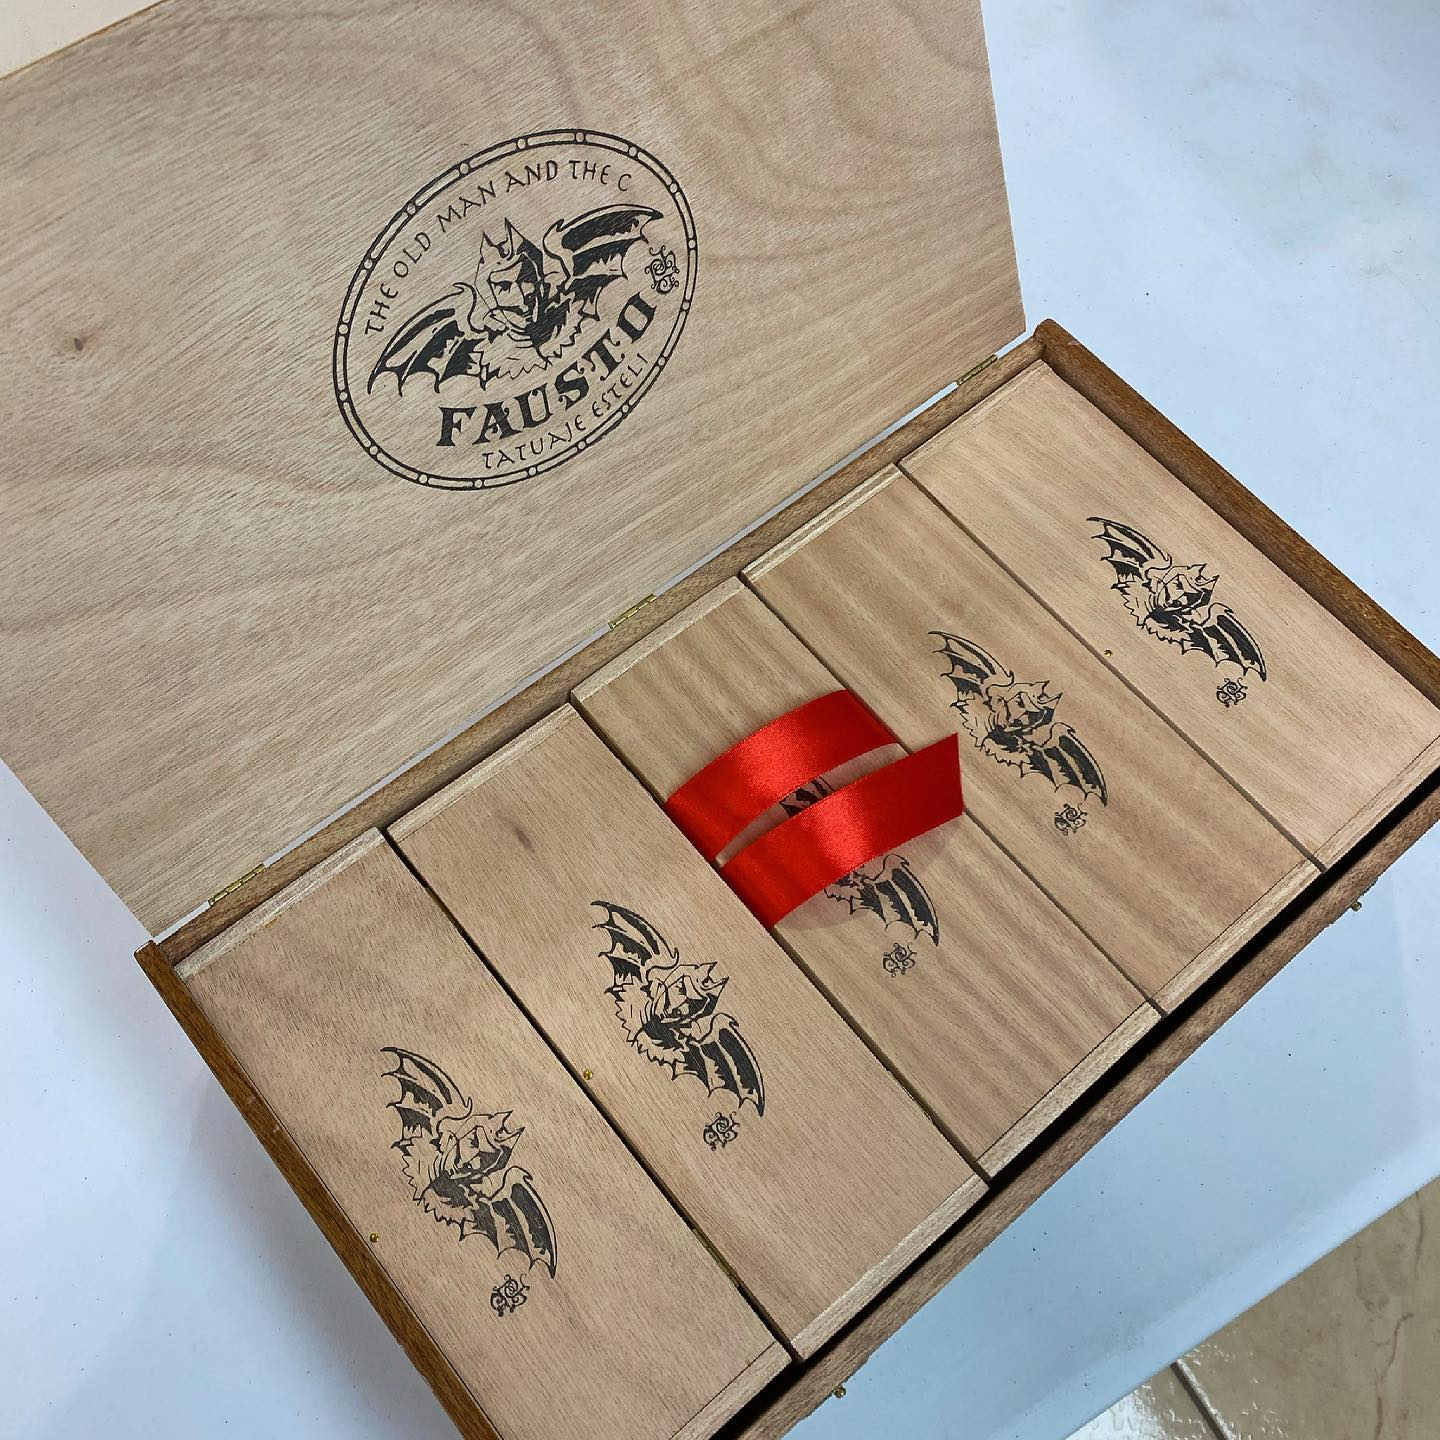 Cigar News: Tatuaje Fausto Old Man and the C Arrives at Retailers